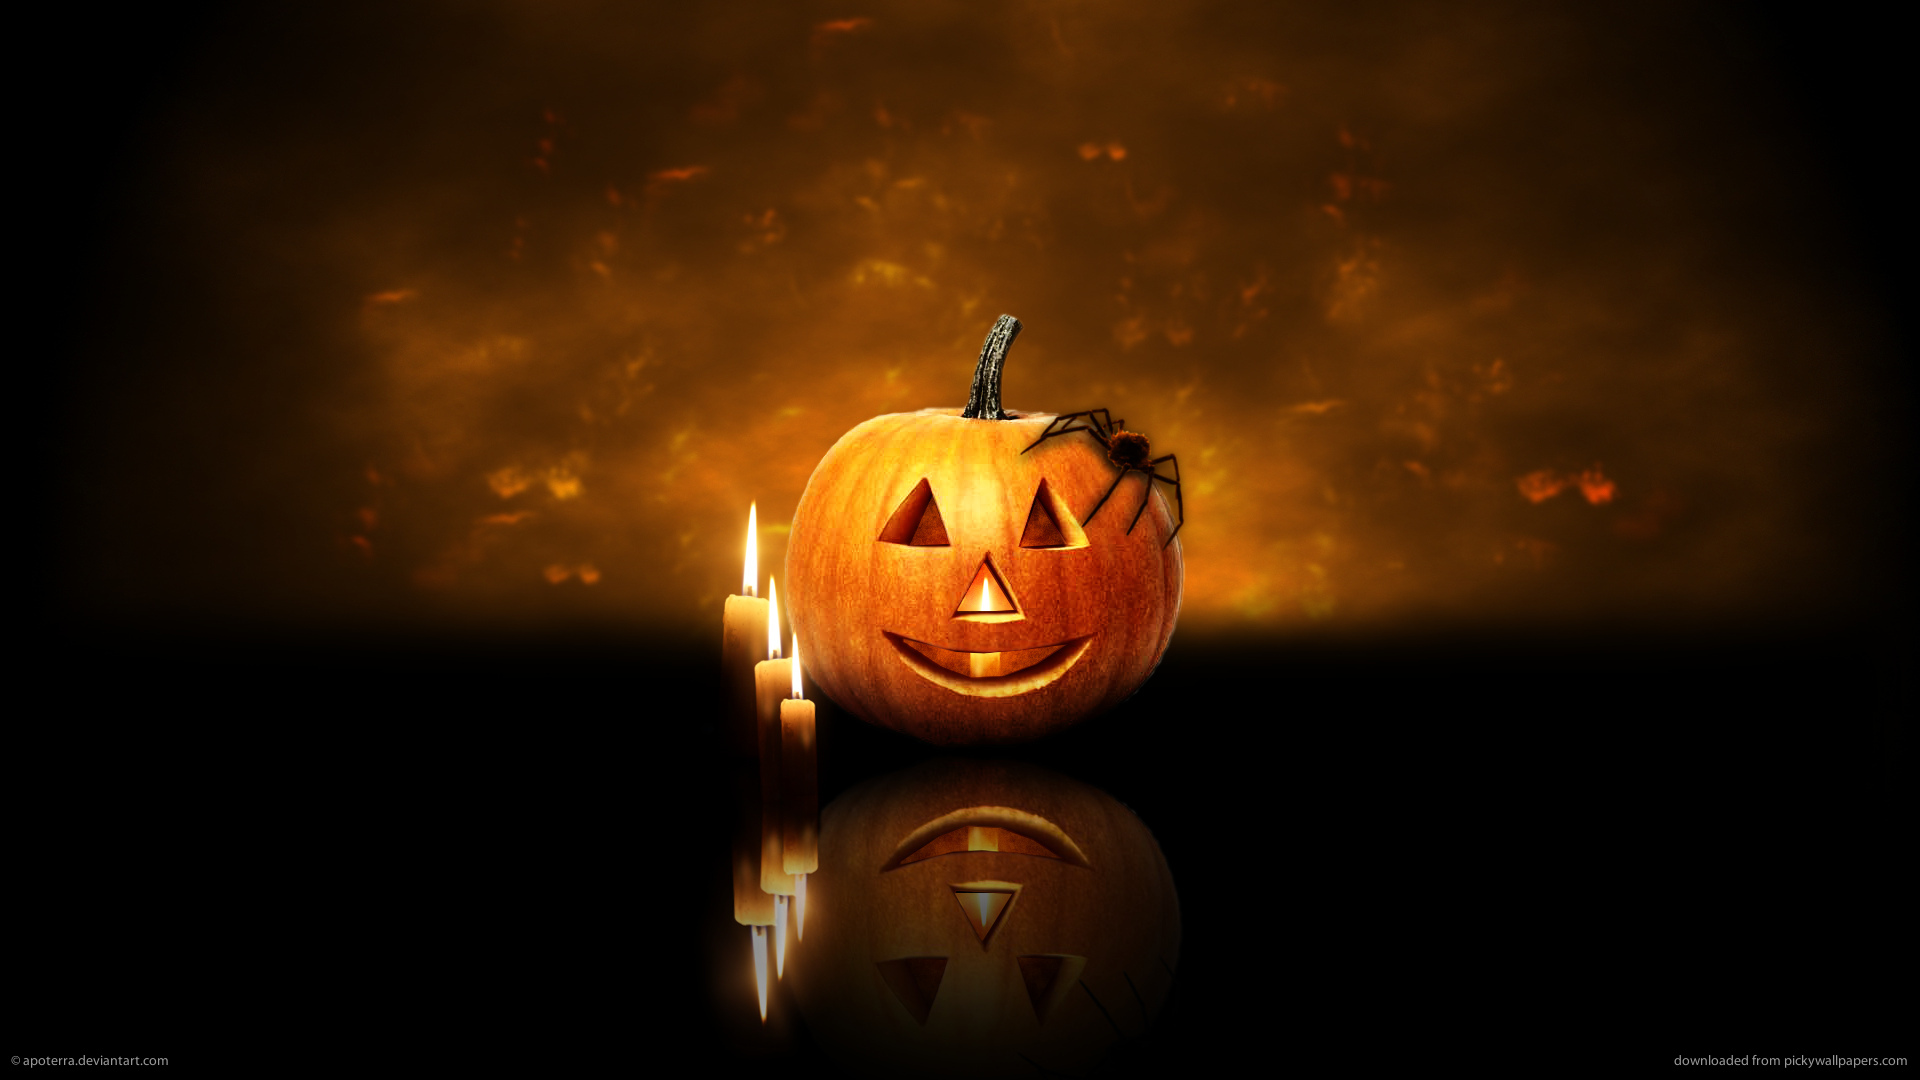 Download. Description wallpaper: Halloween Screensavers ...